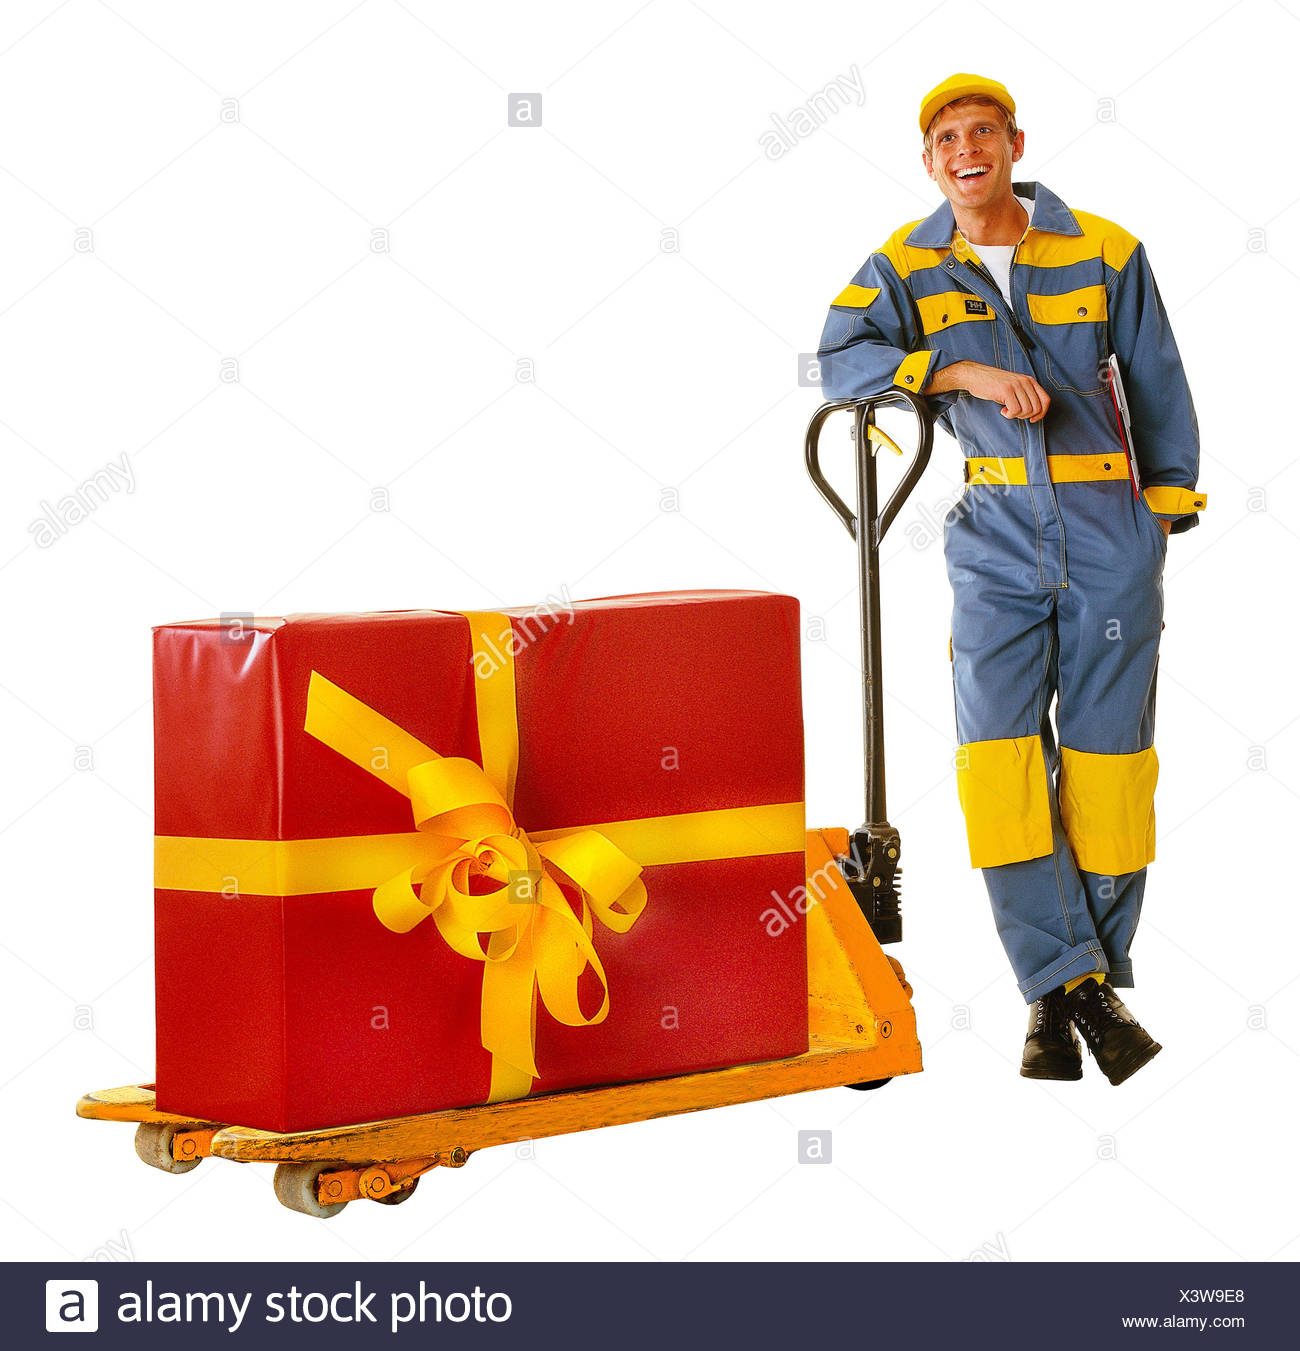 Messenger, happy, elevating platform trucks, present, professions, man, friendly, friendliness, overall, working clothes, occupation, parcel deliver, package delivery, package, surprise, gigantic package, envelope, red, loop, mesh, yellow, studio, cut out, - Stock Image